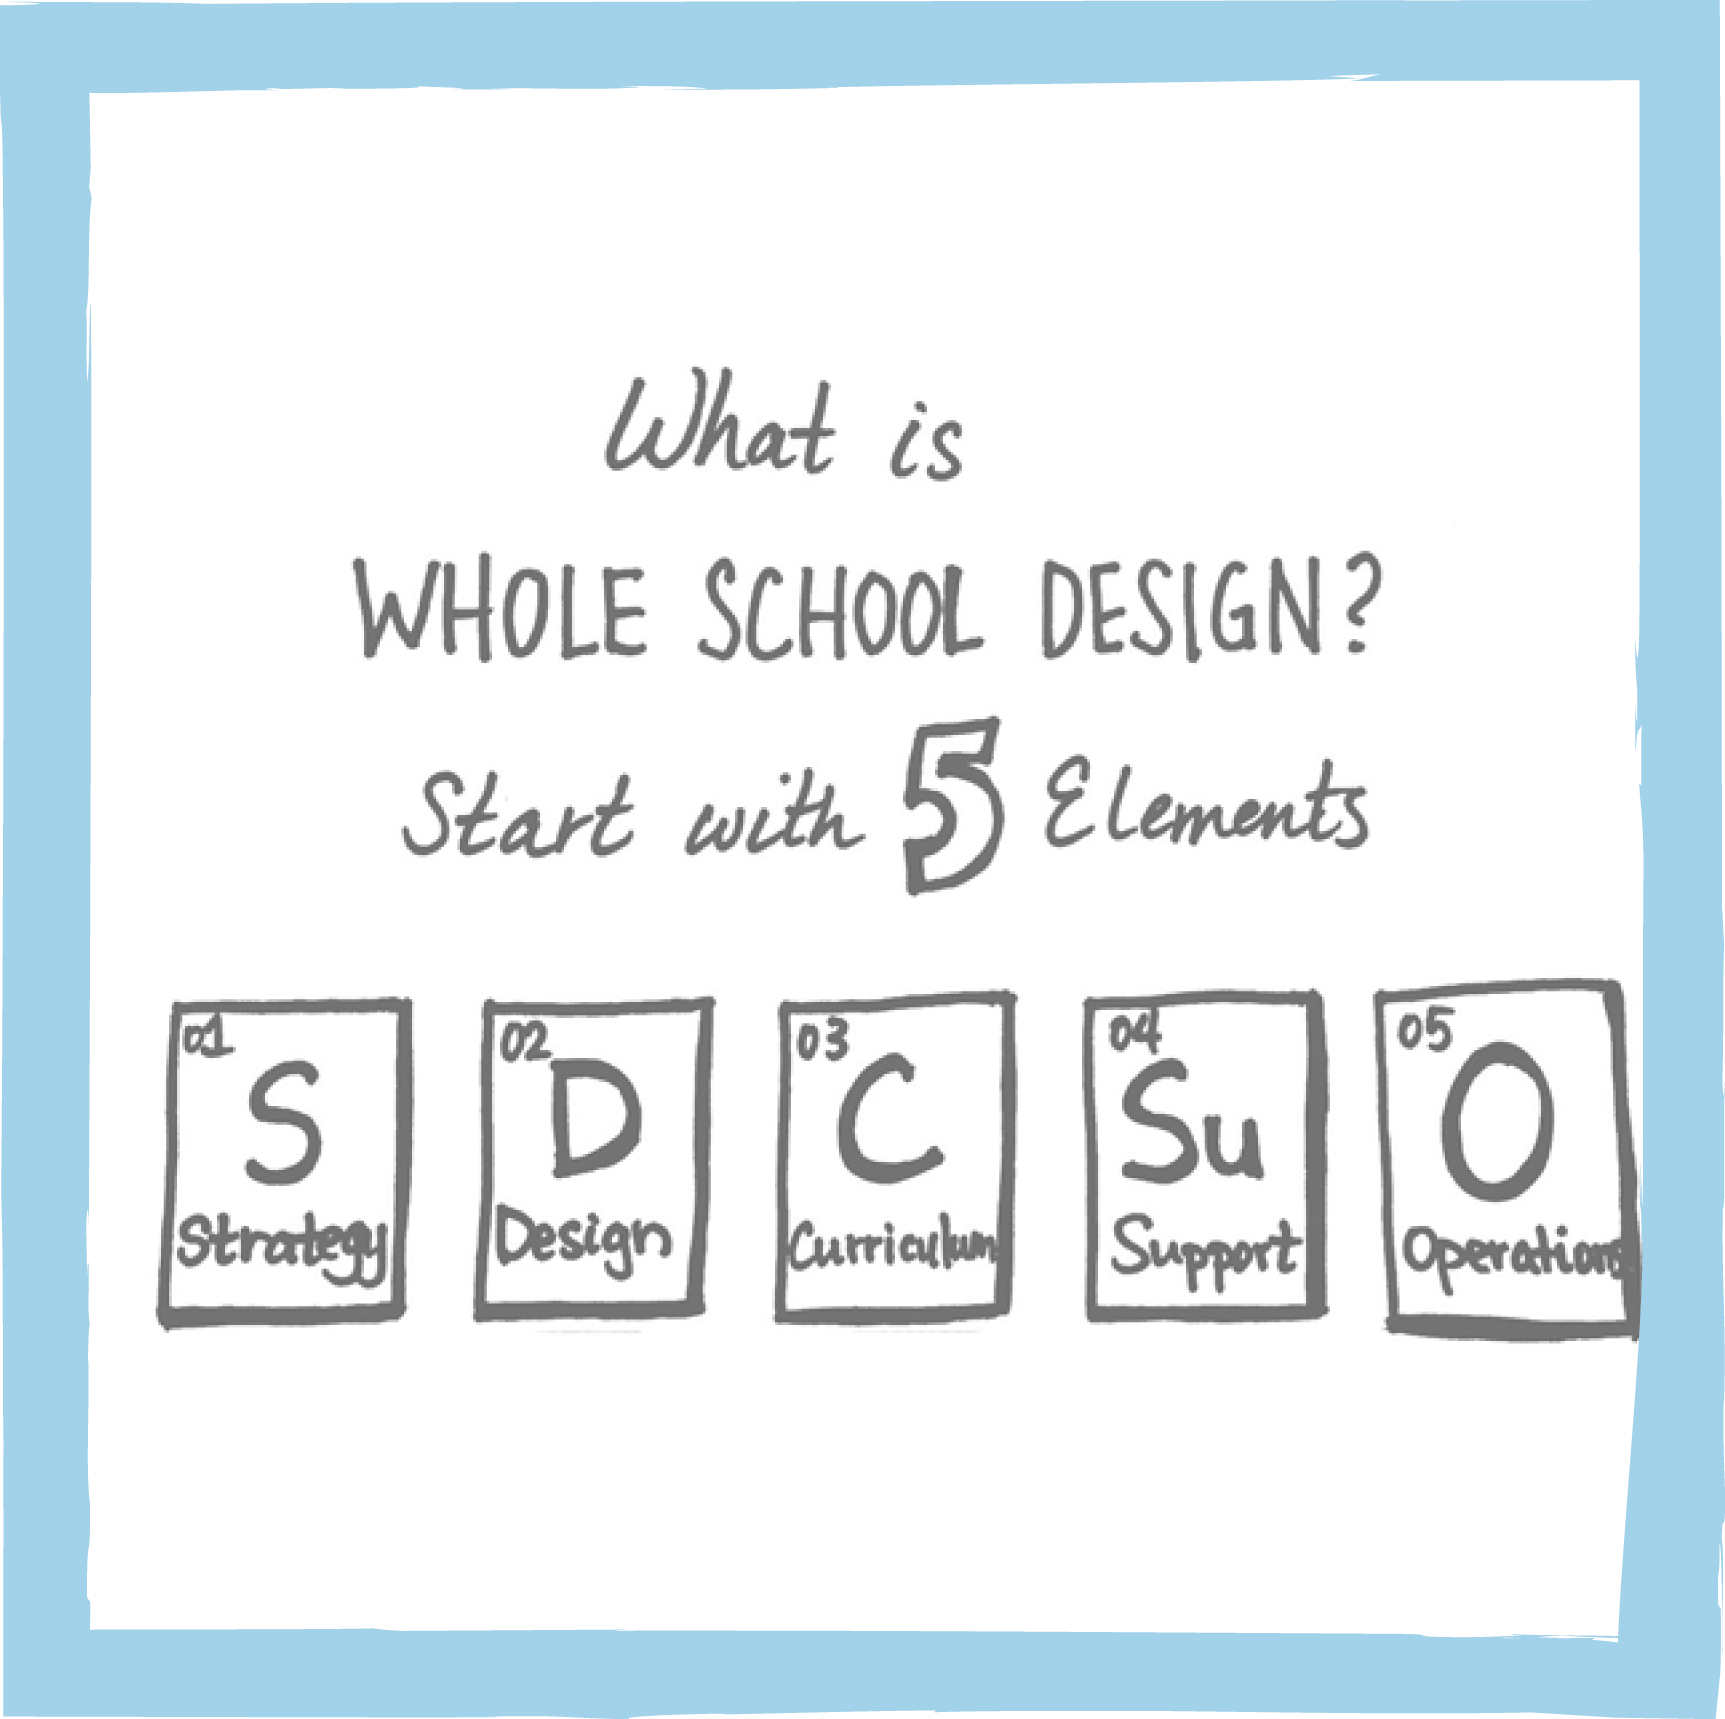 What is Whole School Design in Personalized Learning